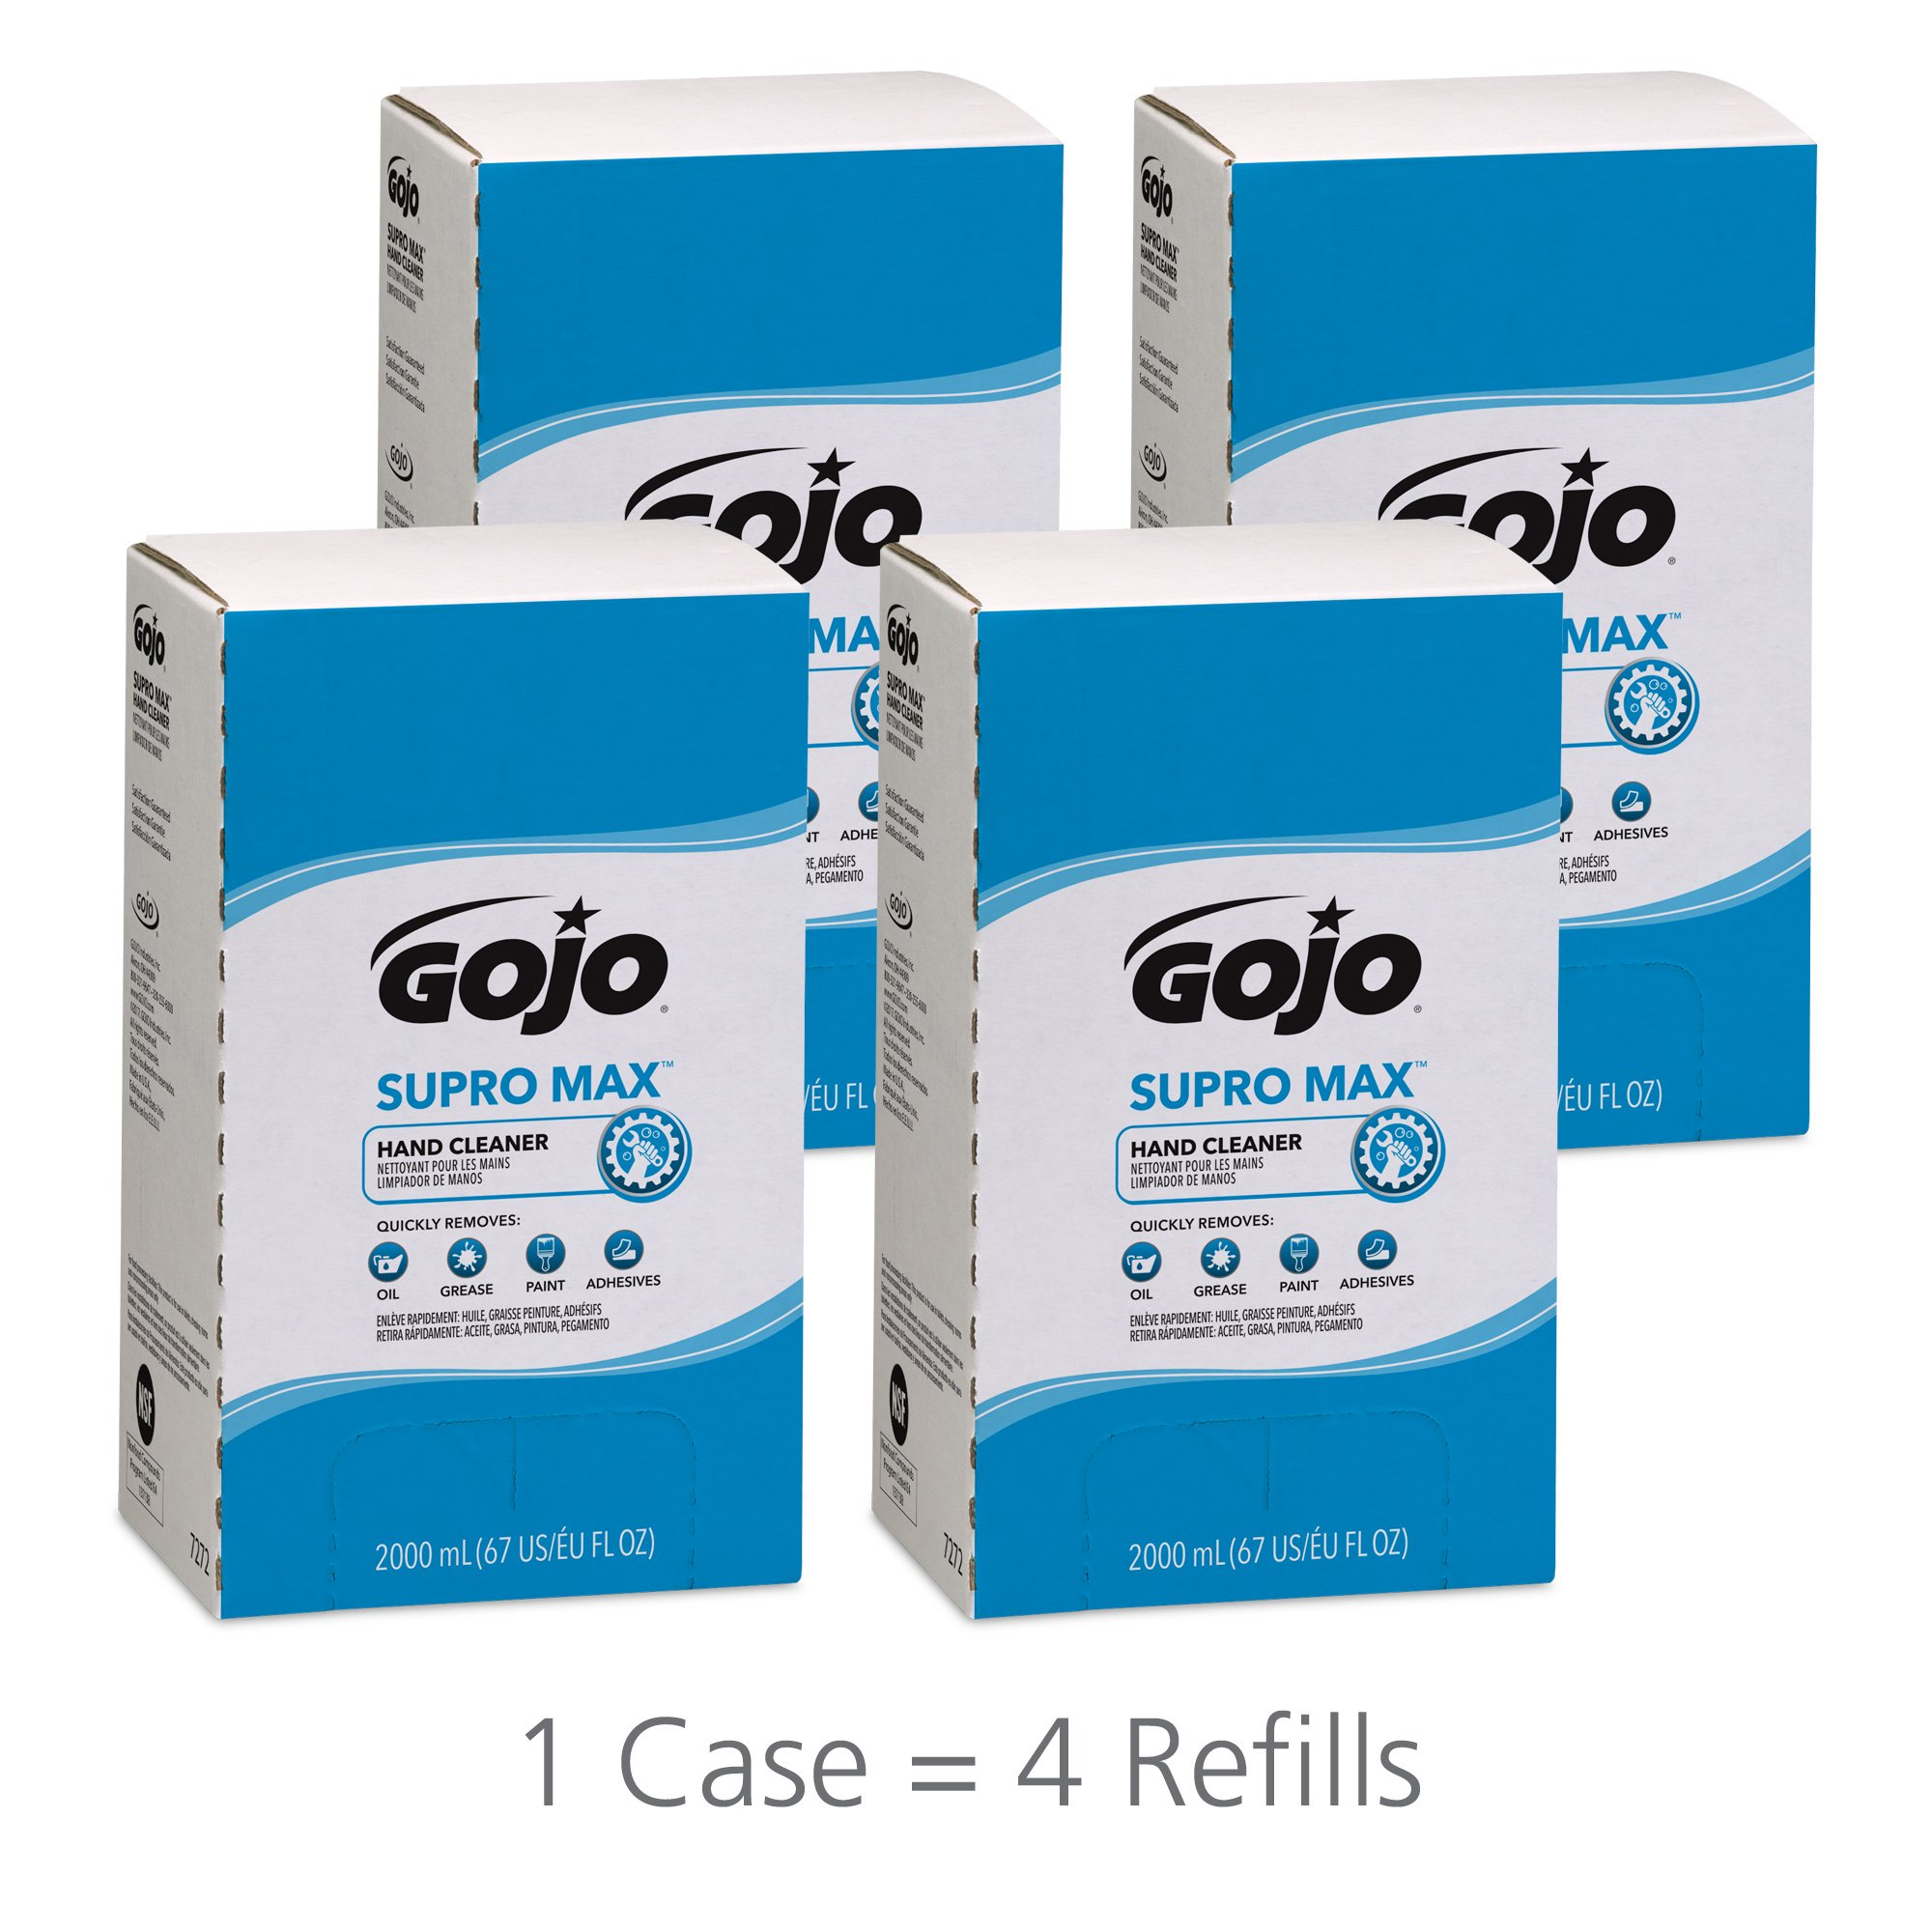 GOJO 727204CT Supro Max Hand Cleaner, 2000mL Pouch(pack of 4)